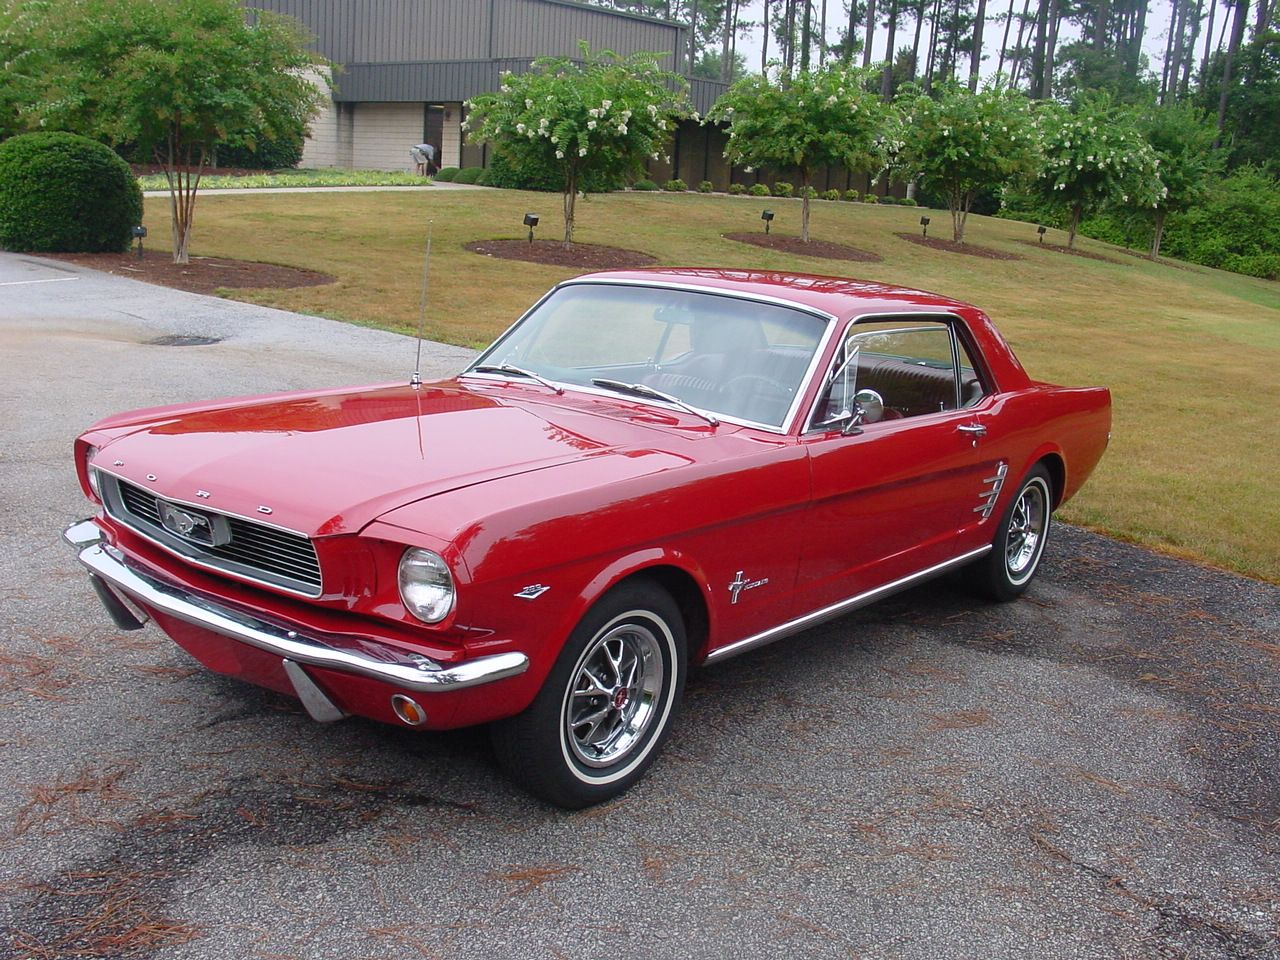 65 fastback ford mustang mustangs amp rods ford muscle cars for sale - 1965 Candy Apple Red Mustang I Almost Bought This Car But Couldn T Red Mustangford